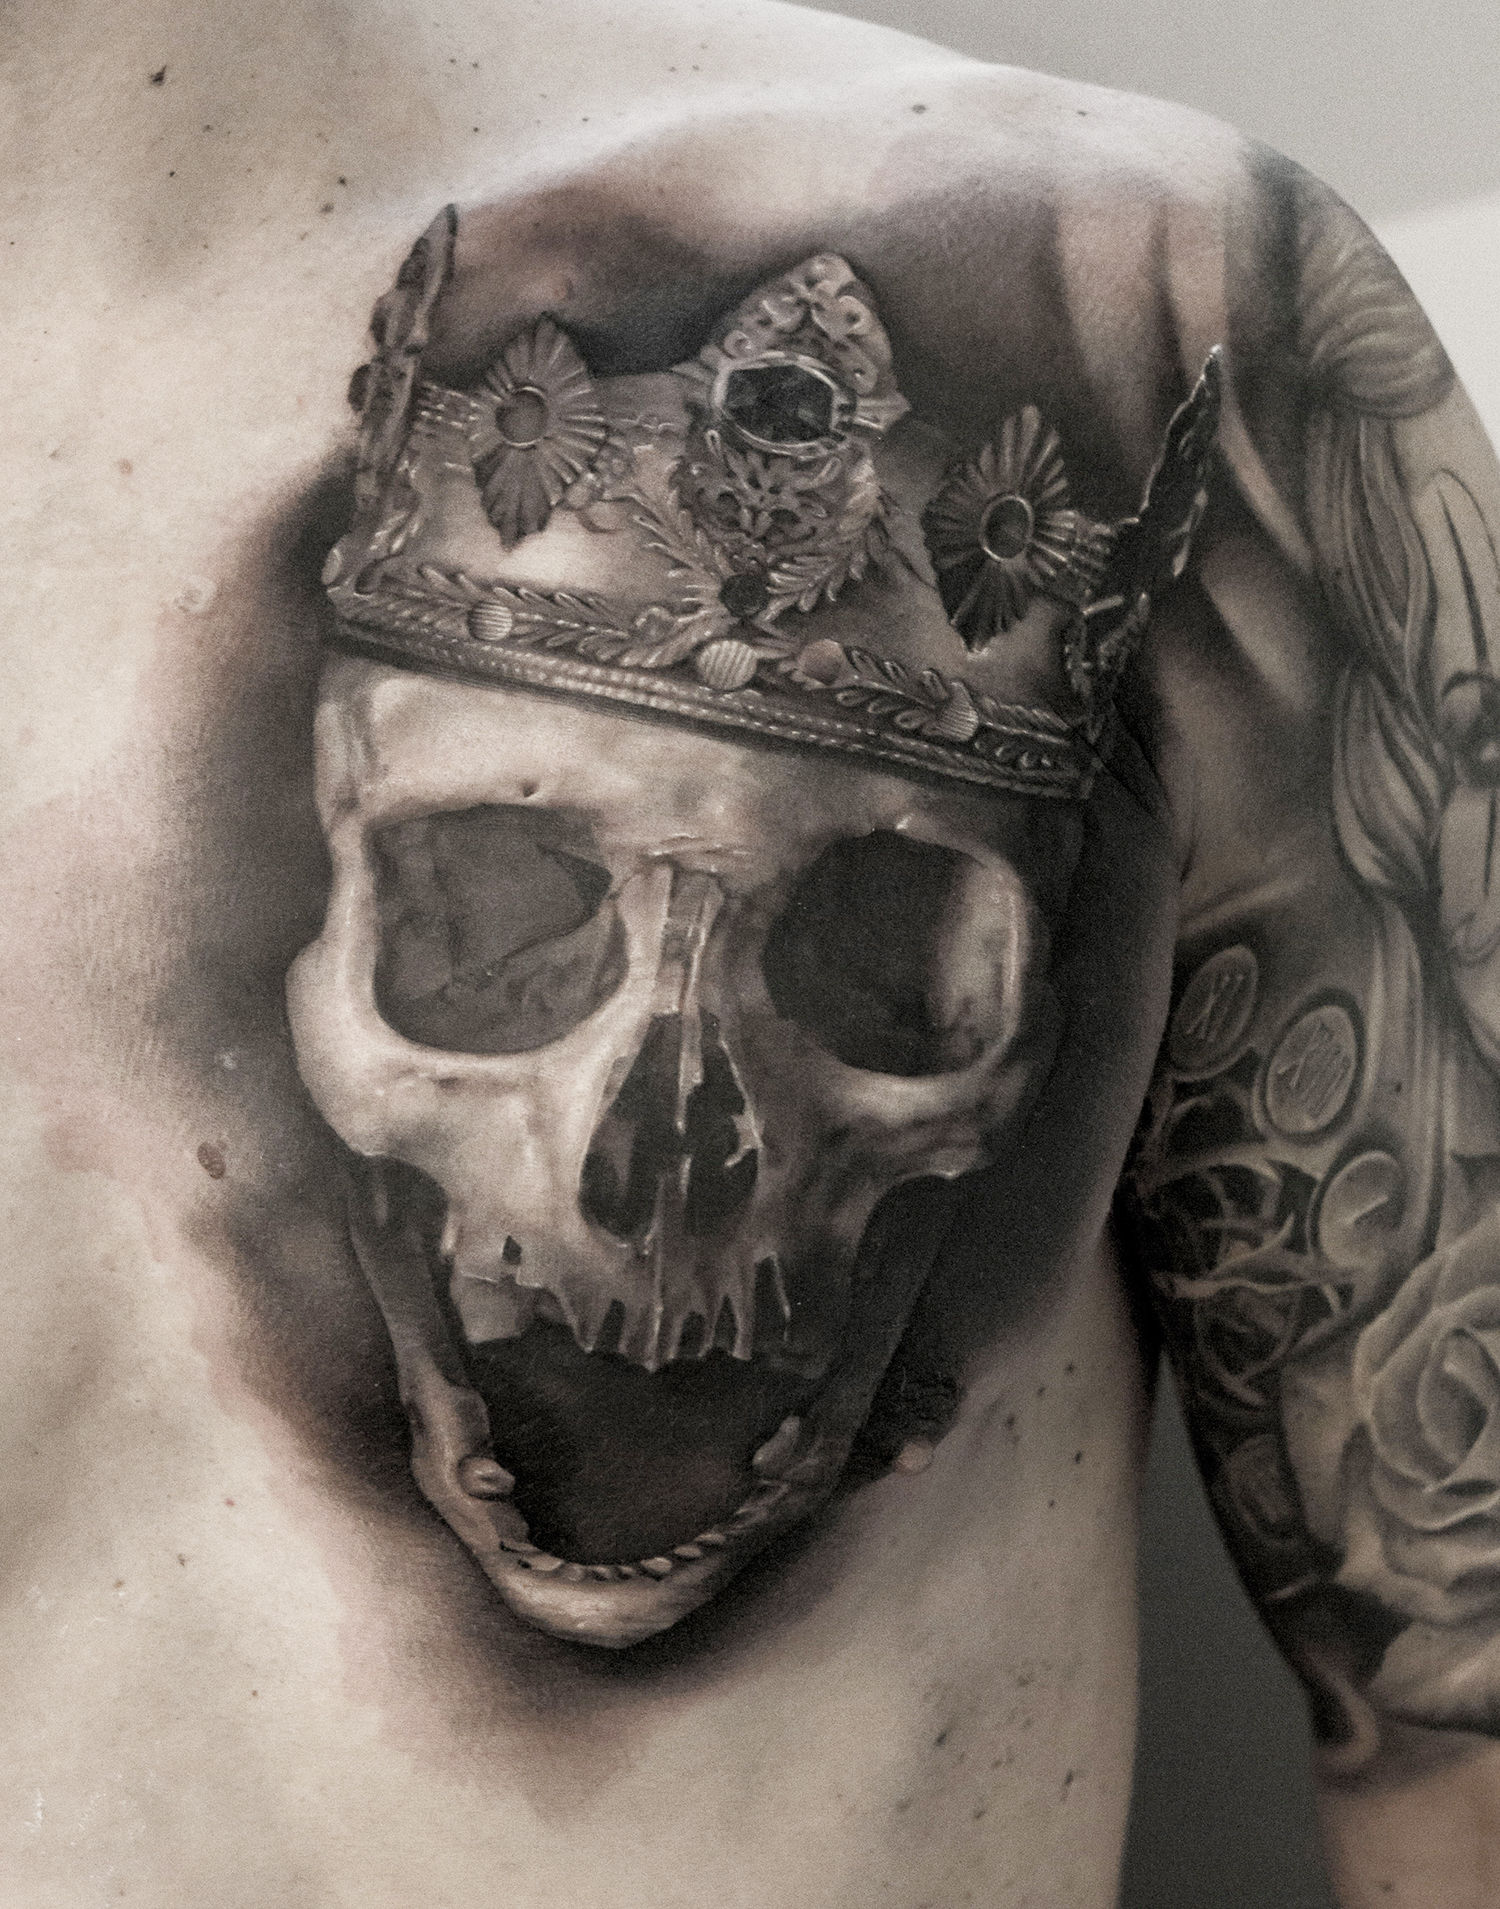 skull with crown tattoo, dark art tattoo by neon judas